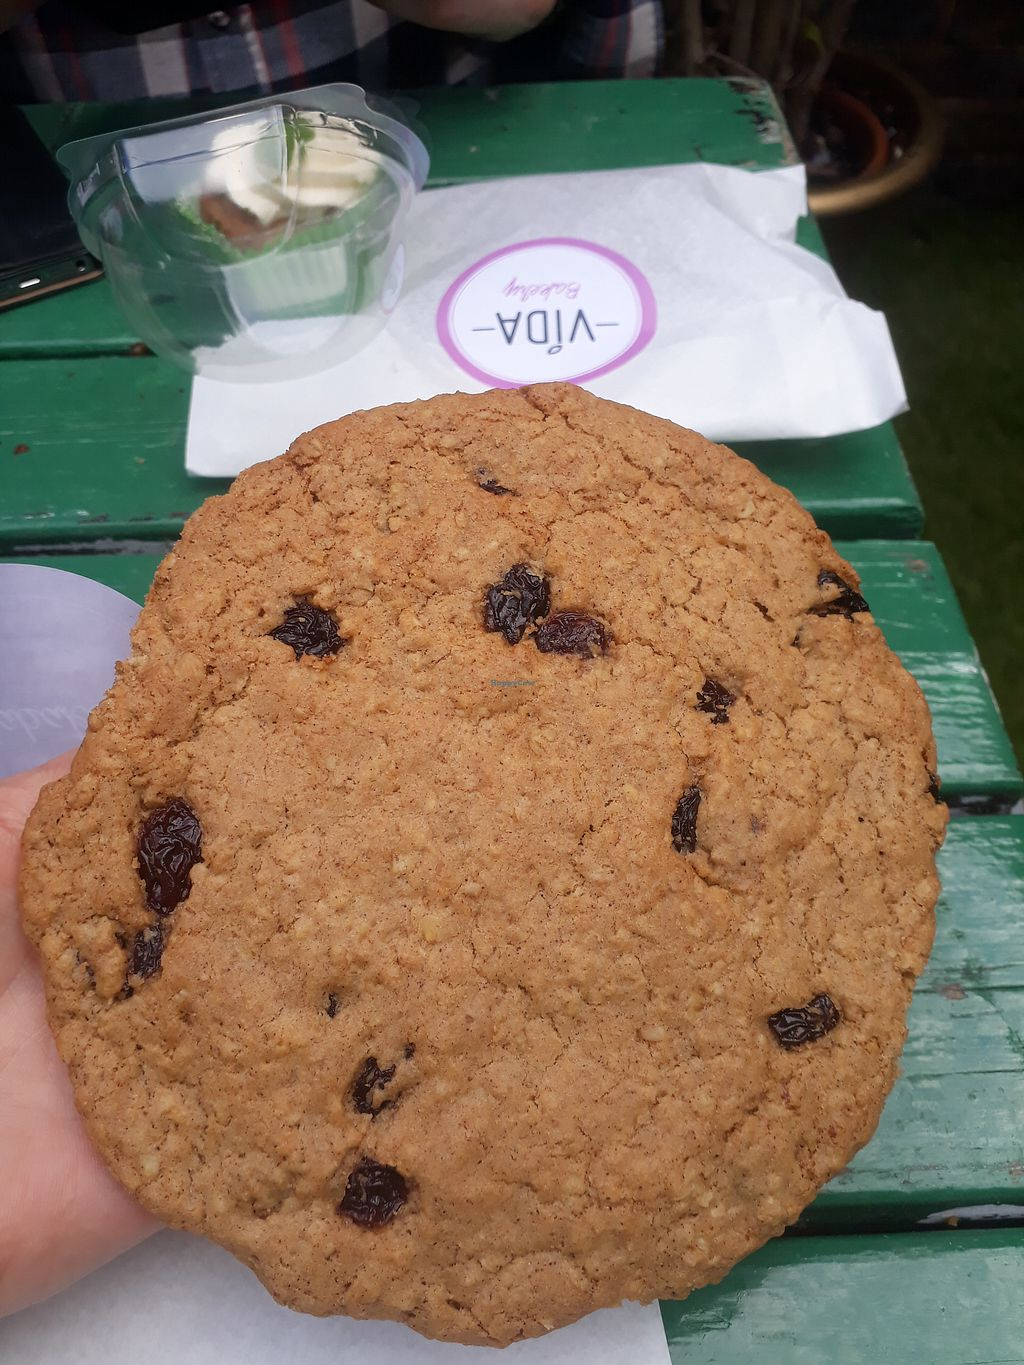 "Photo of Vida Bakery  by <a href=""/members/profile/LauraMu"">LauraMu</a> <br/>The best cinnamon raisin cookies <br/> January 4, 2018  - <a href='/contact/abuse/image/84964/342937'>Report</a>"